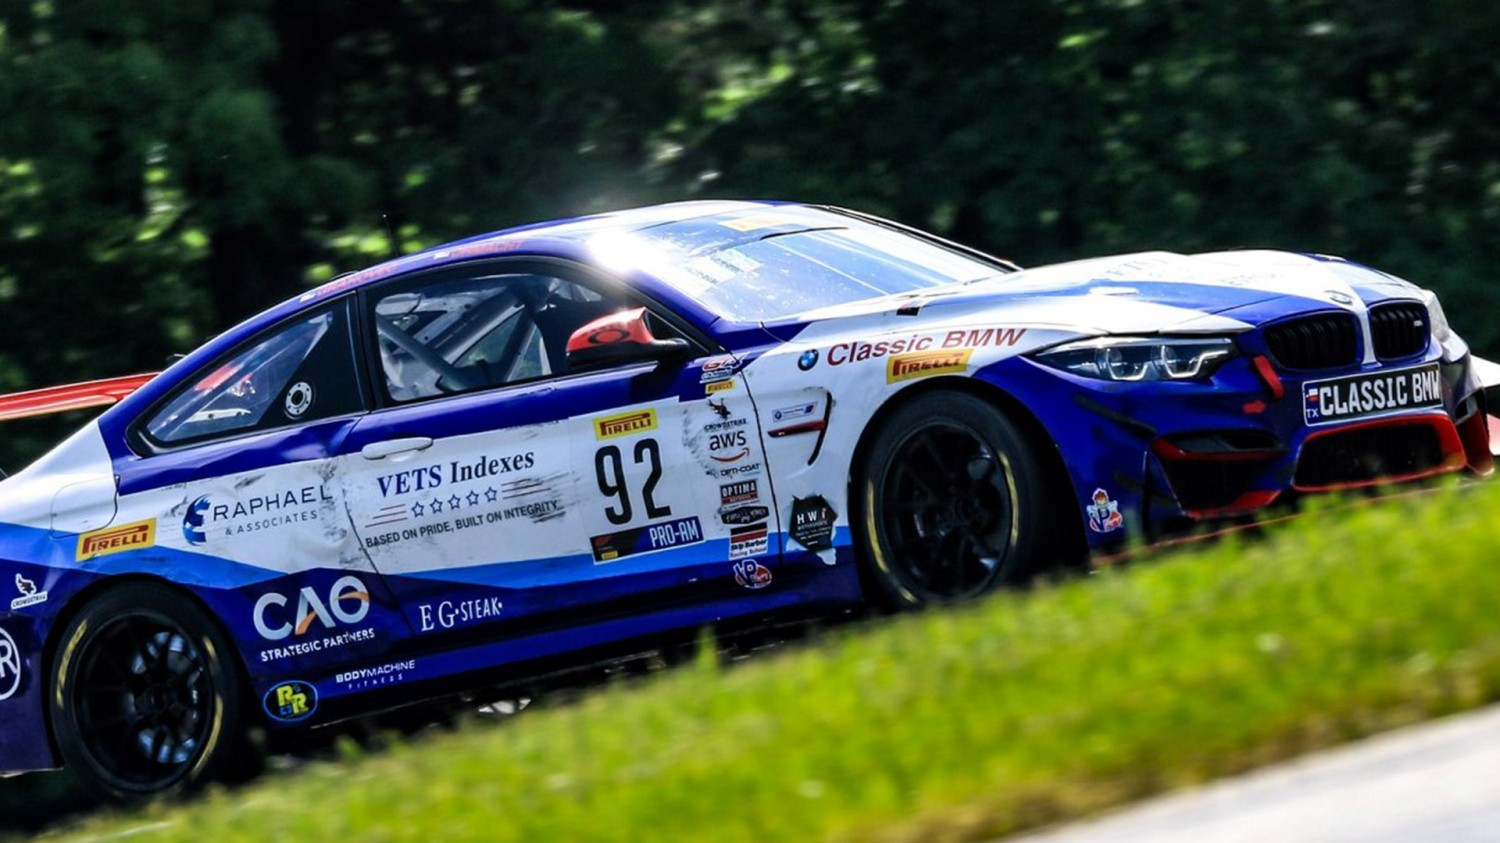 Three Podium Finishes for Fast Track Racing/Classic BMW in